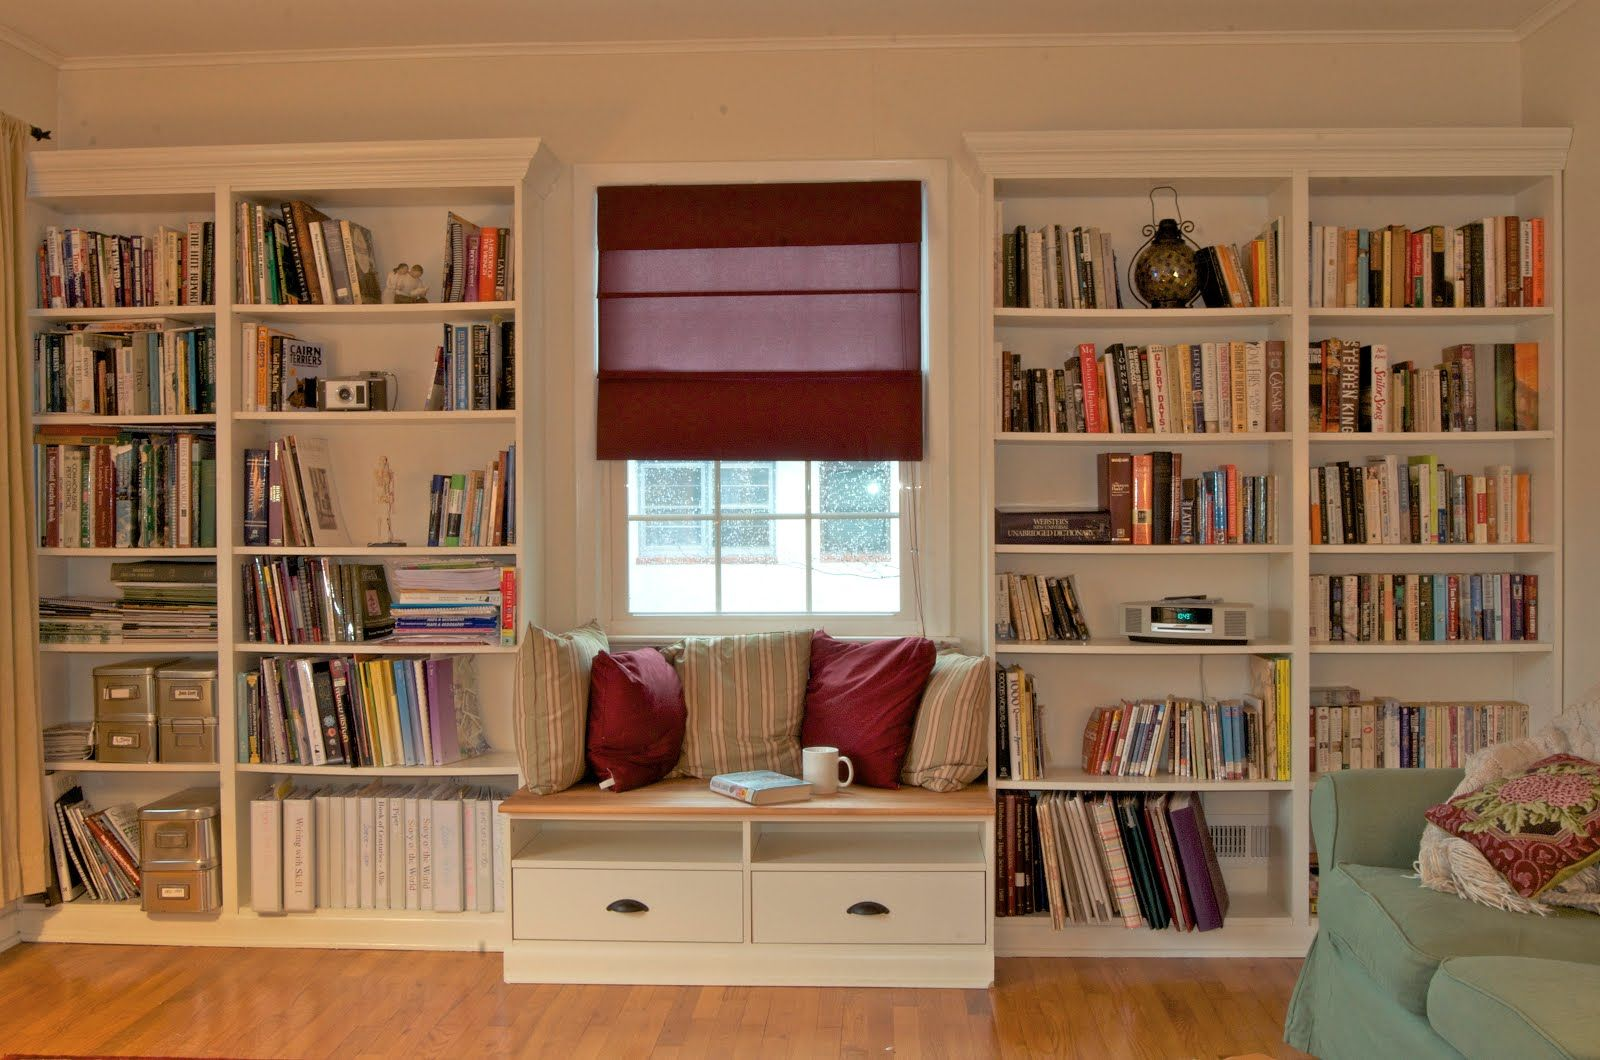 Built In Bookshelves With Window Seat For Under 350 Bookshelves